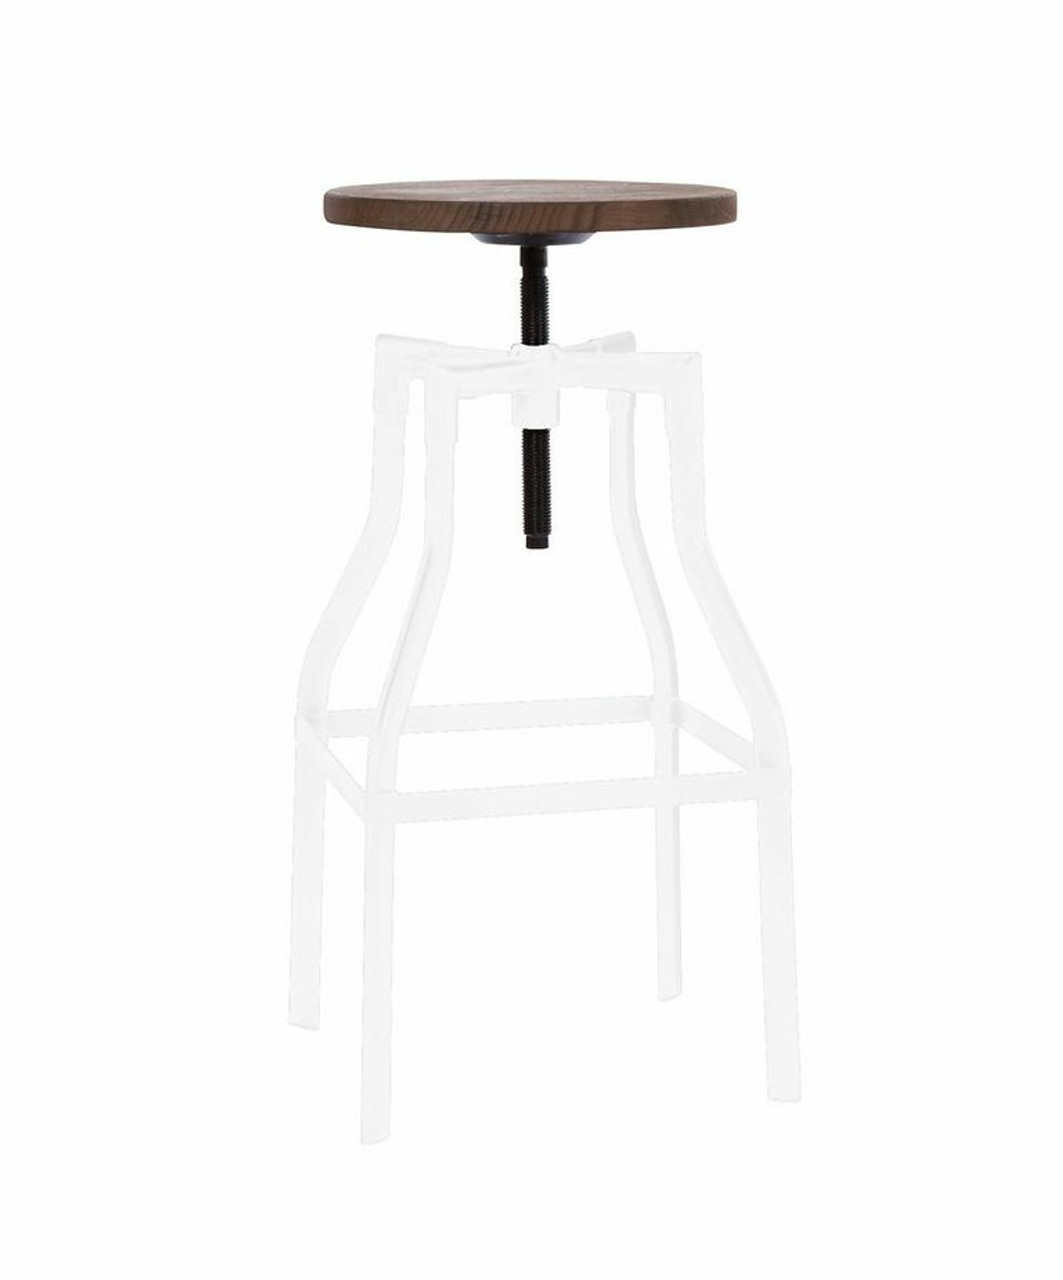 Industrial Adjustable Wood and Metal White Bar Stool  sc 1 st  Zin Home & Industrial Wood and Metal White Bar Stool | Zin Home islam-shia.org